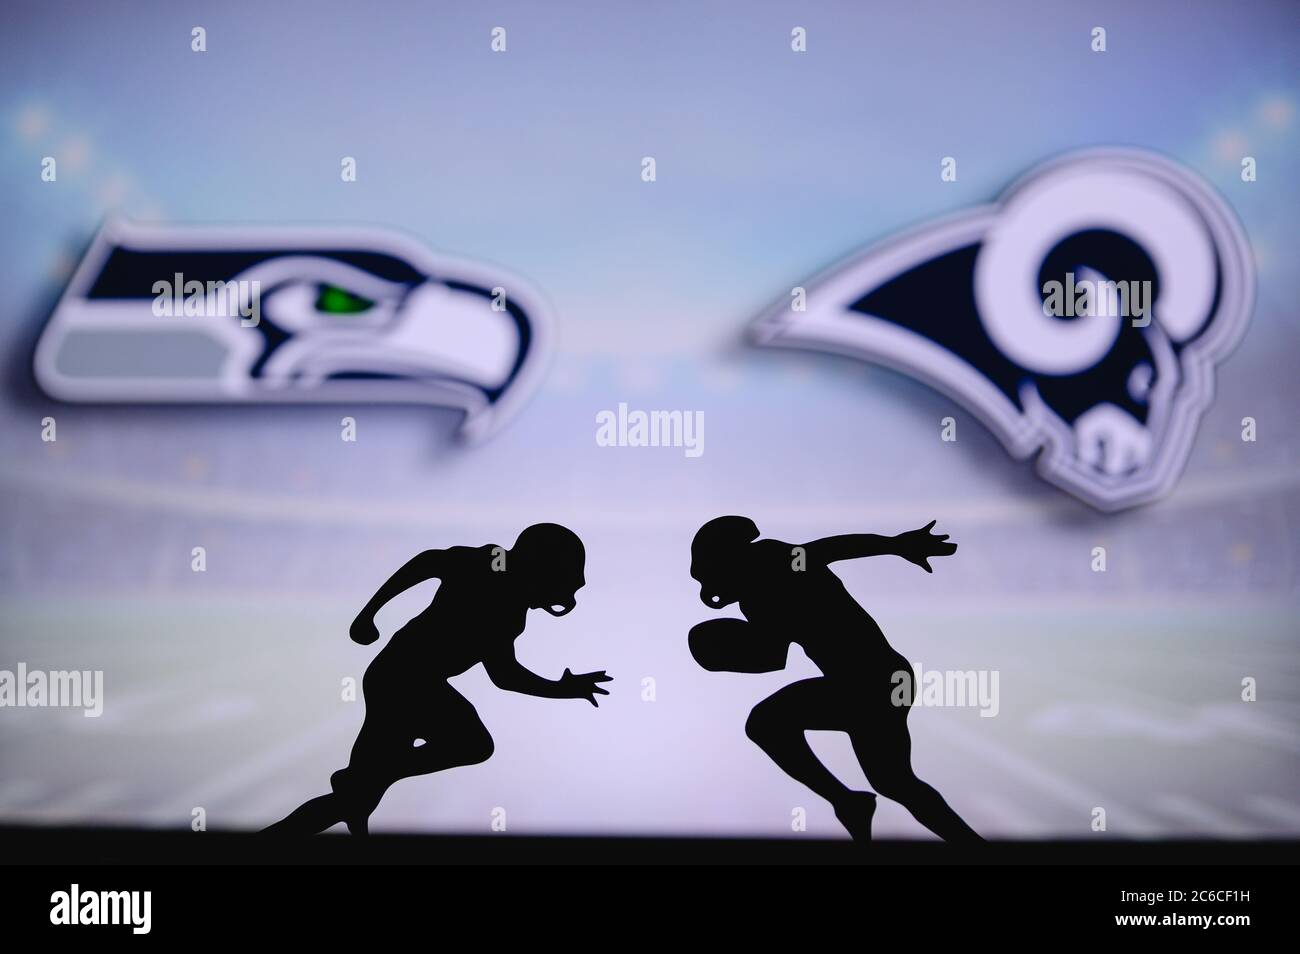 Seattle Seahawks Vs Los Angeles Rams Nfl Match Poster Two American Football Players Silhouette Facing Each Other On The Field Clubs Logo In Backgr Stock Photo Alamy